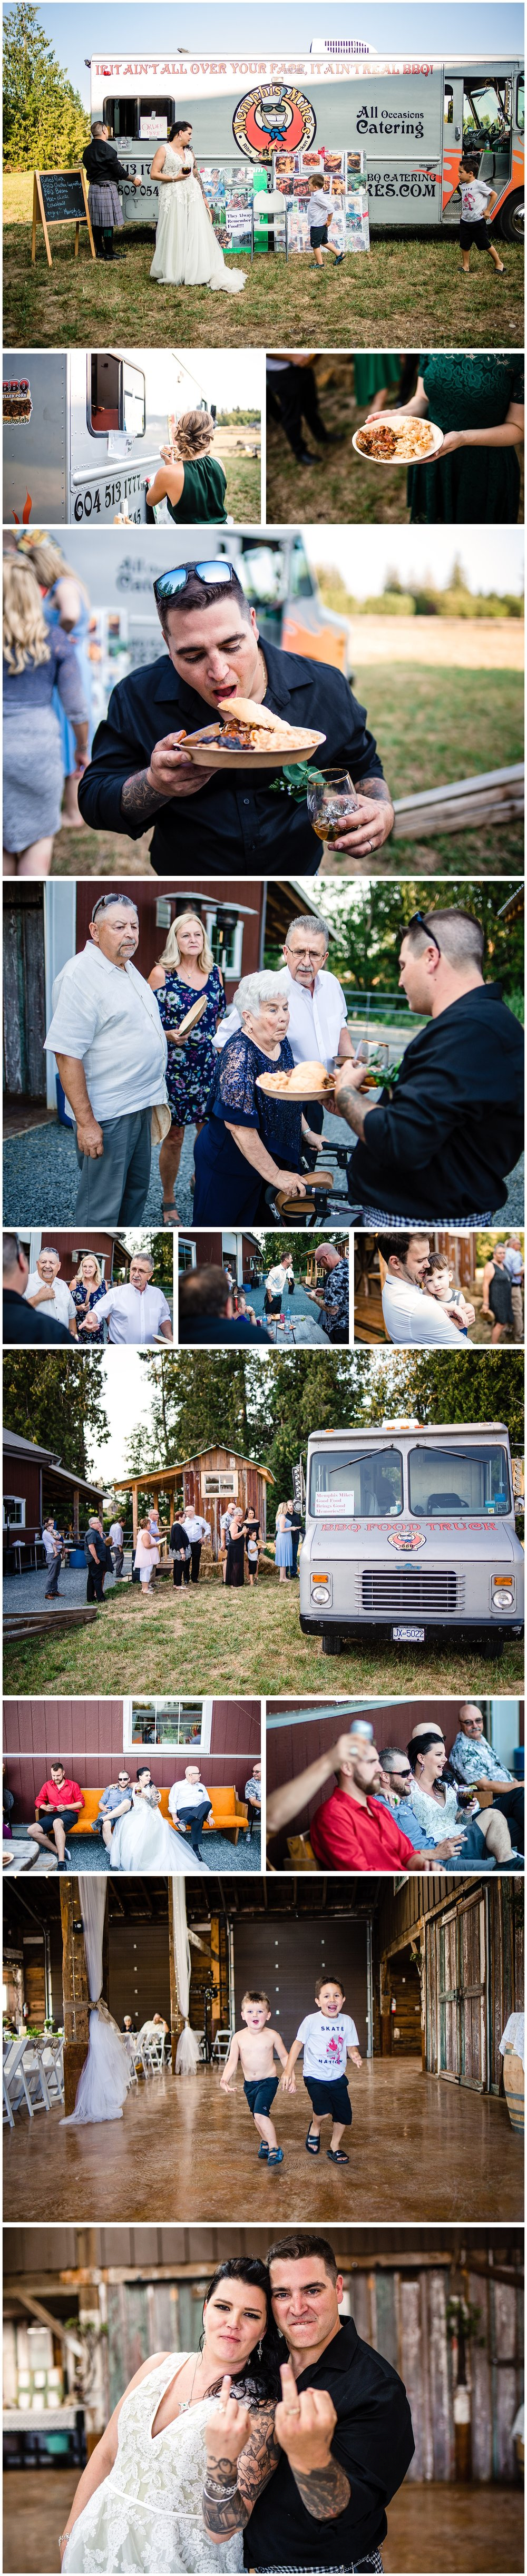 White-Owl-Barn-langley-bc-wedding-photographer-rustic-bbq-foodtruck-scottish-emerald-green-drinks_0008.jpg